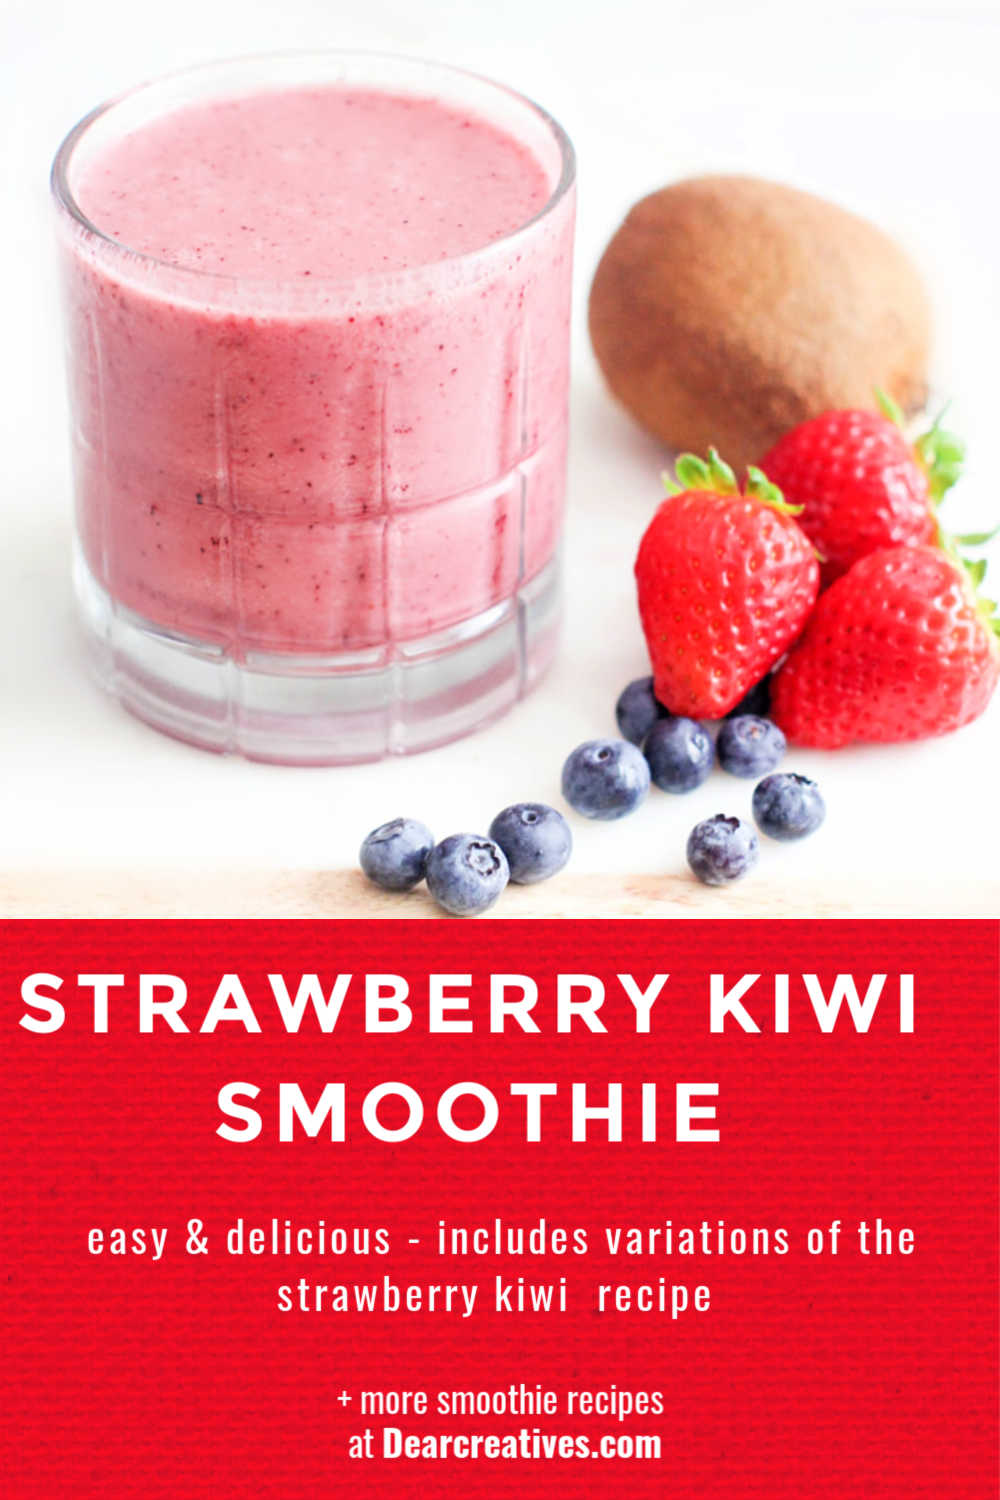 strawberry-kiwi-smoothie-easy-and-delicious-includes-variations-of-the-strawberry-kiwi-recipe-smoothie-recipes-DearCreatives.com